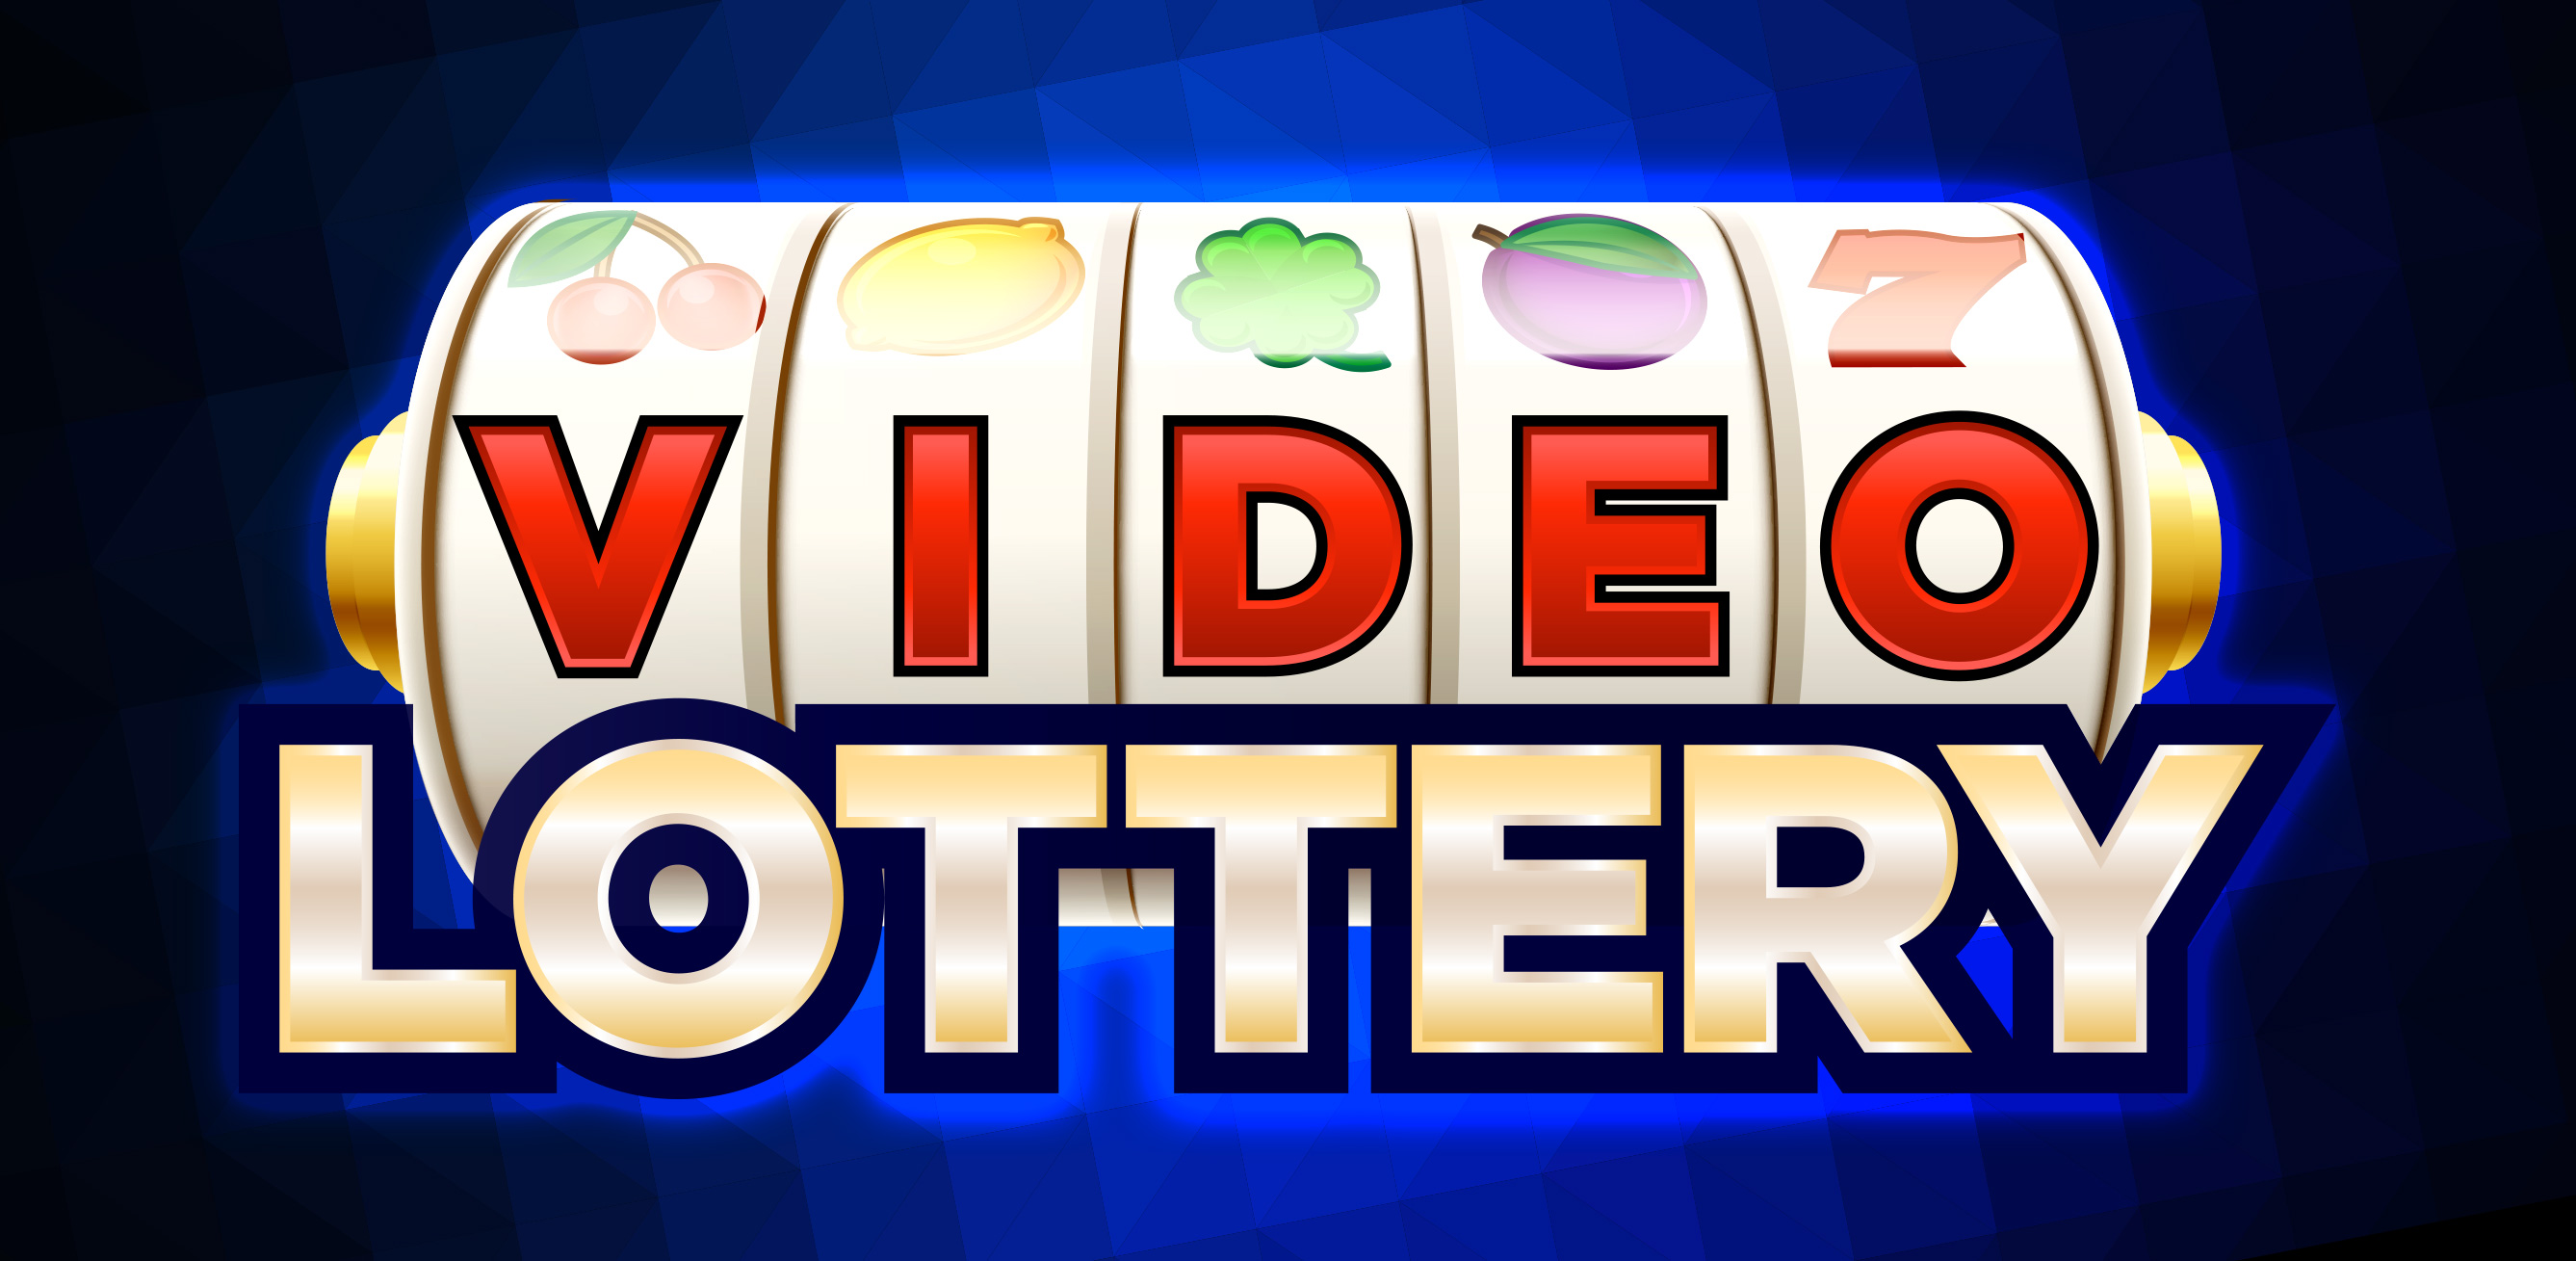 Musique Video Video Lottery Delaware Lottery